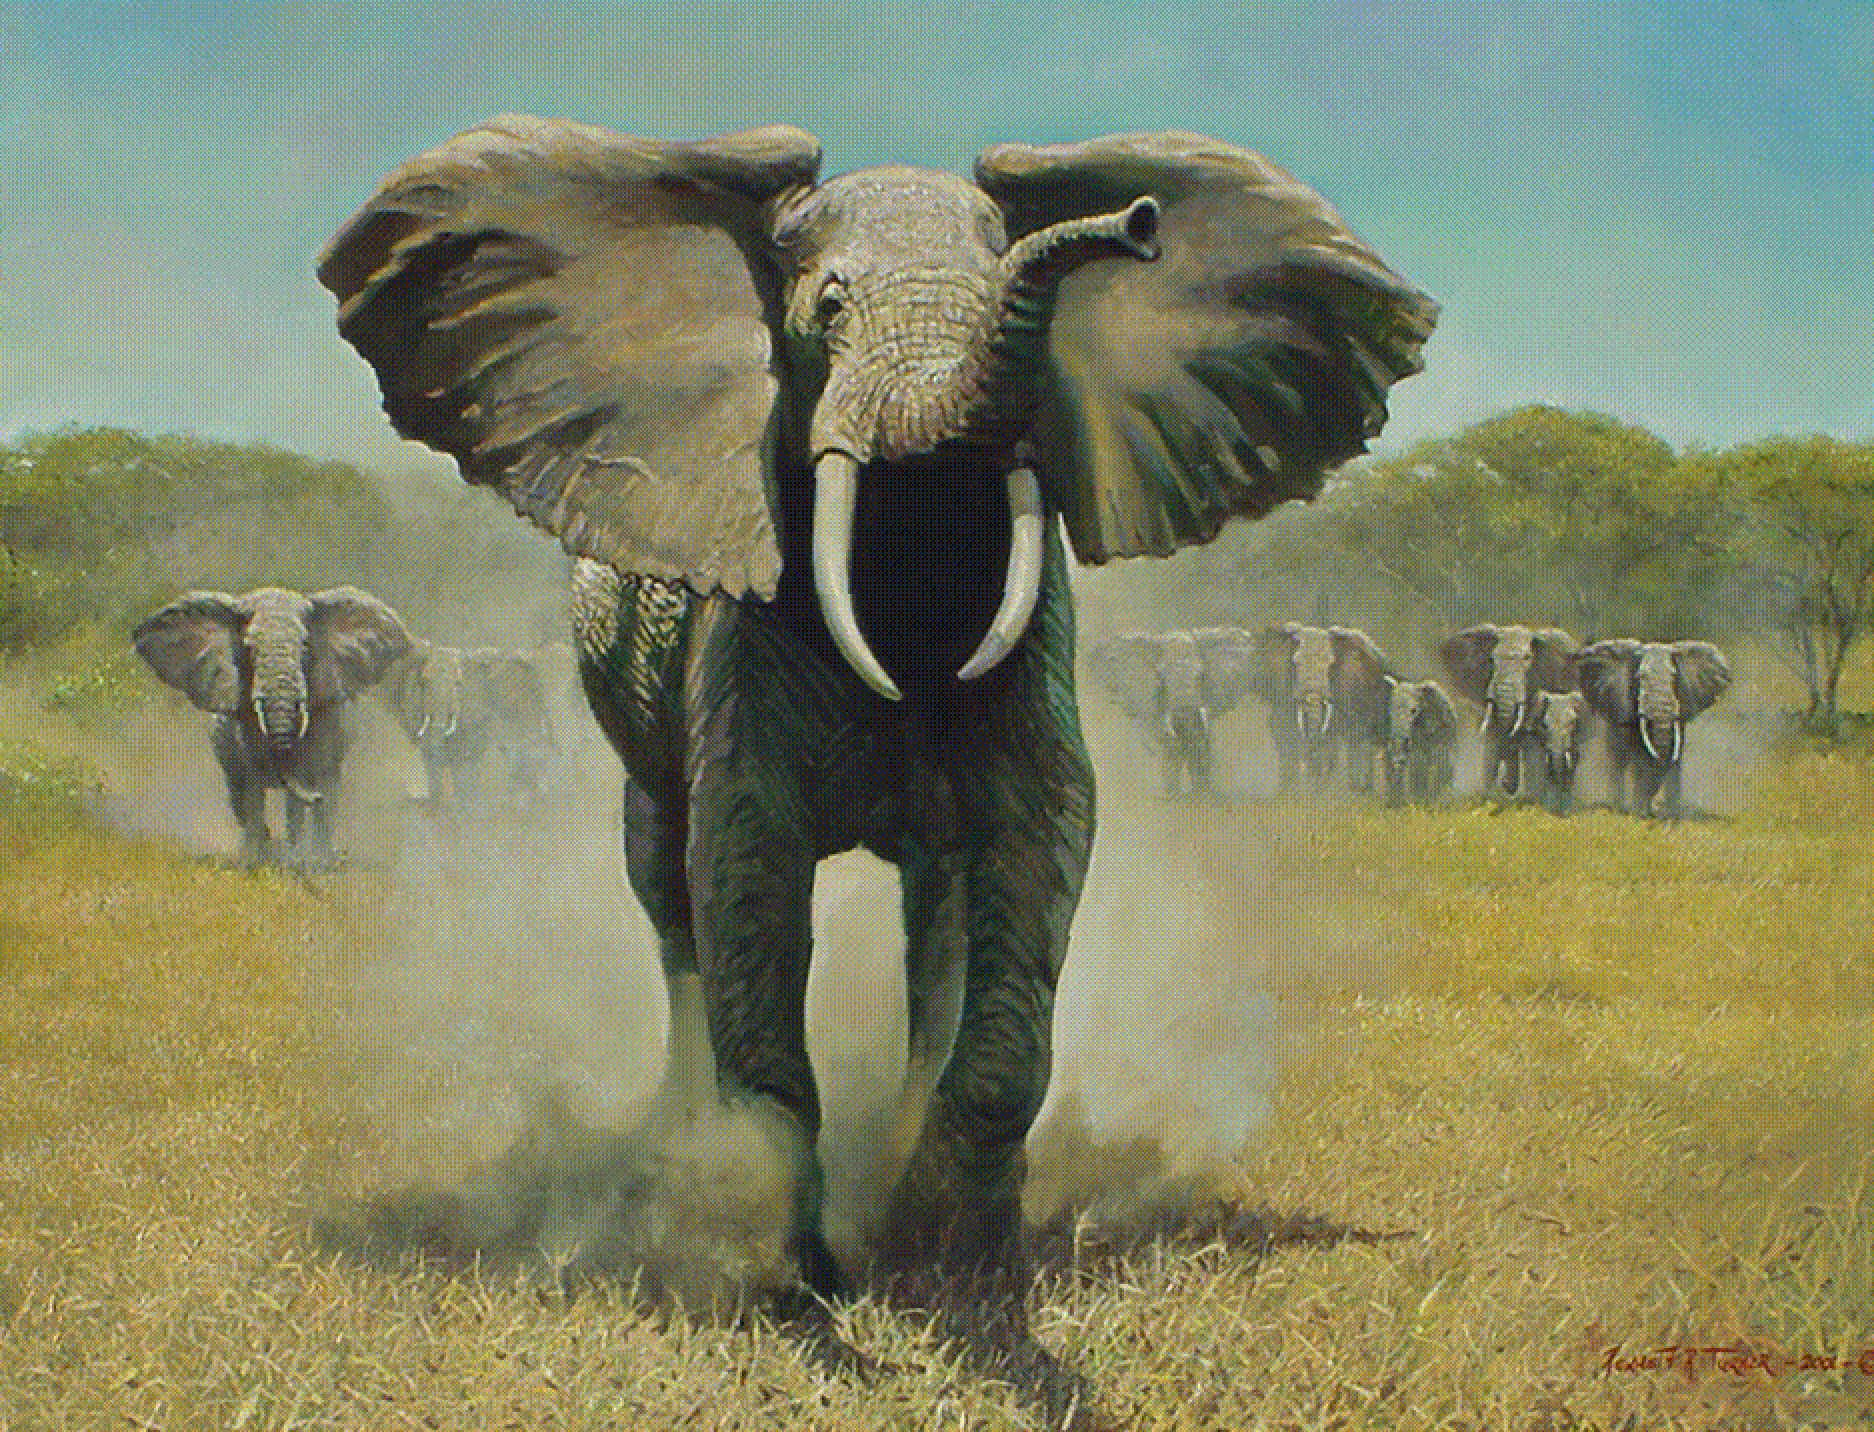 Dowload For Laptop Elephant Hd Wallpaper Anime 63292 High Elephant Pictures Elephant Love Cute Baby Elephant